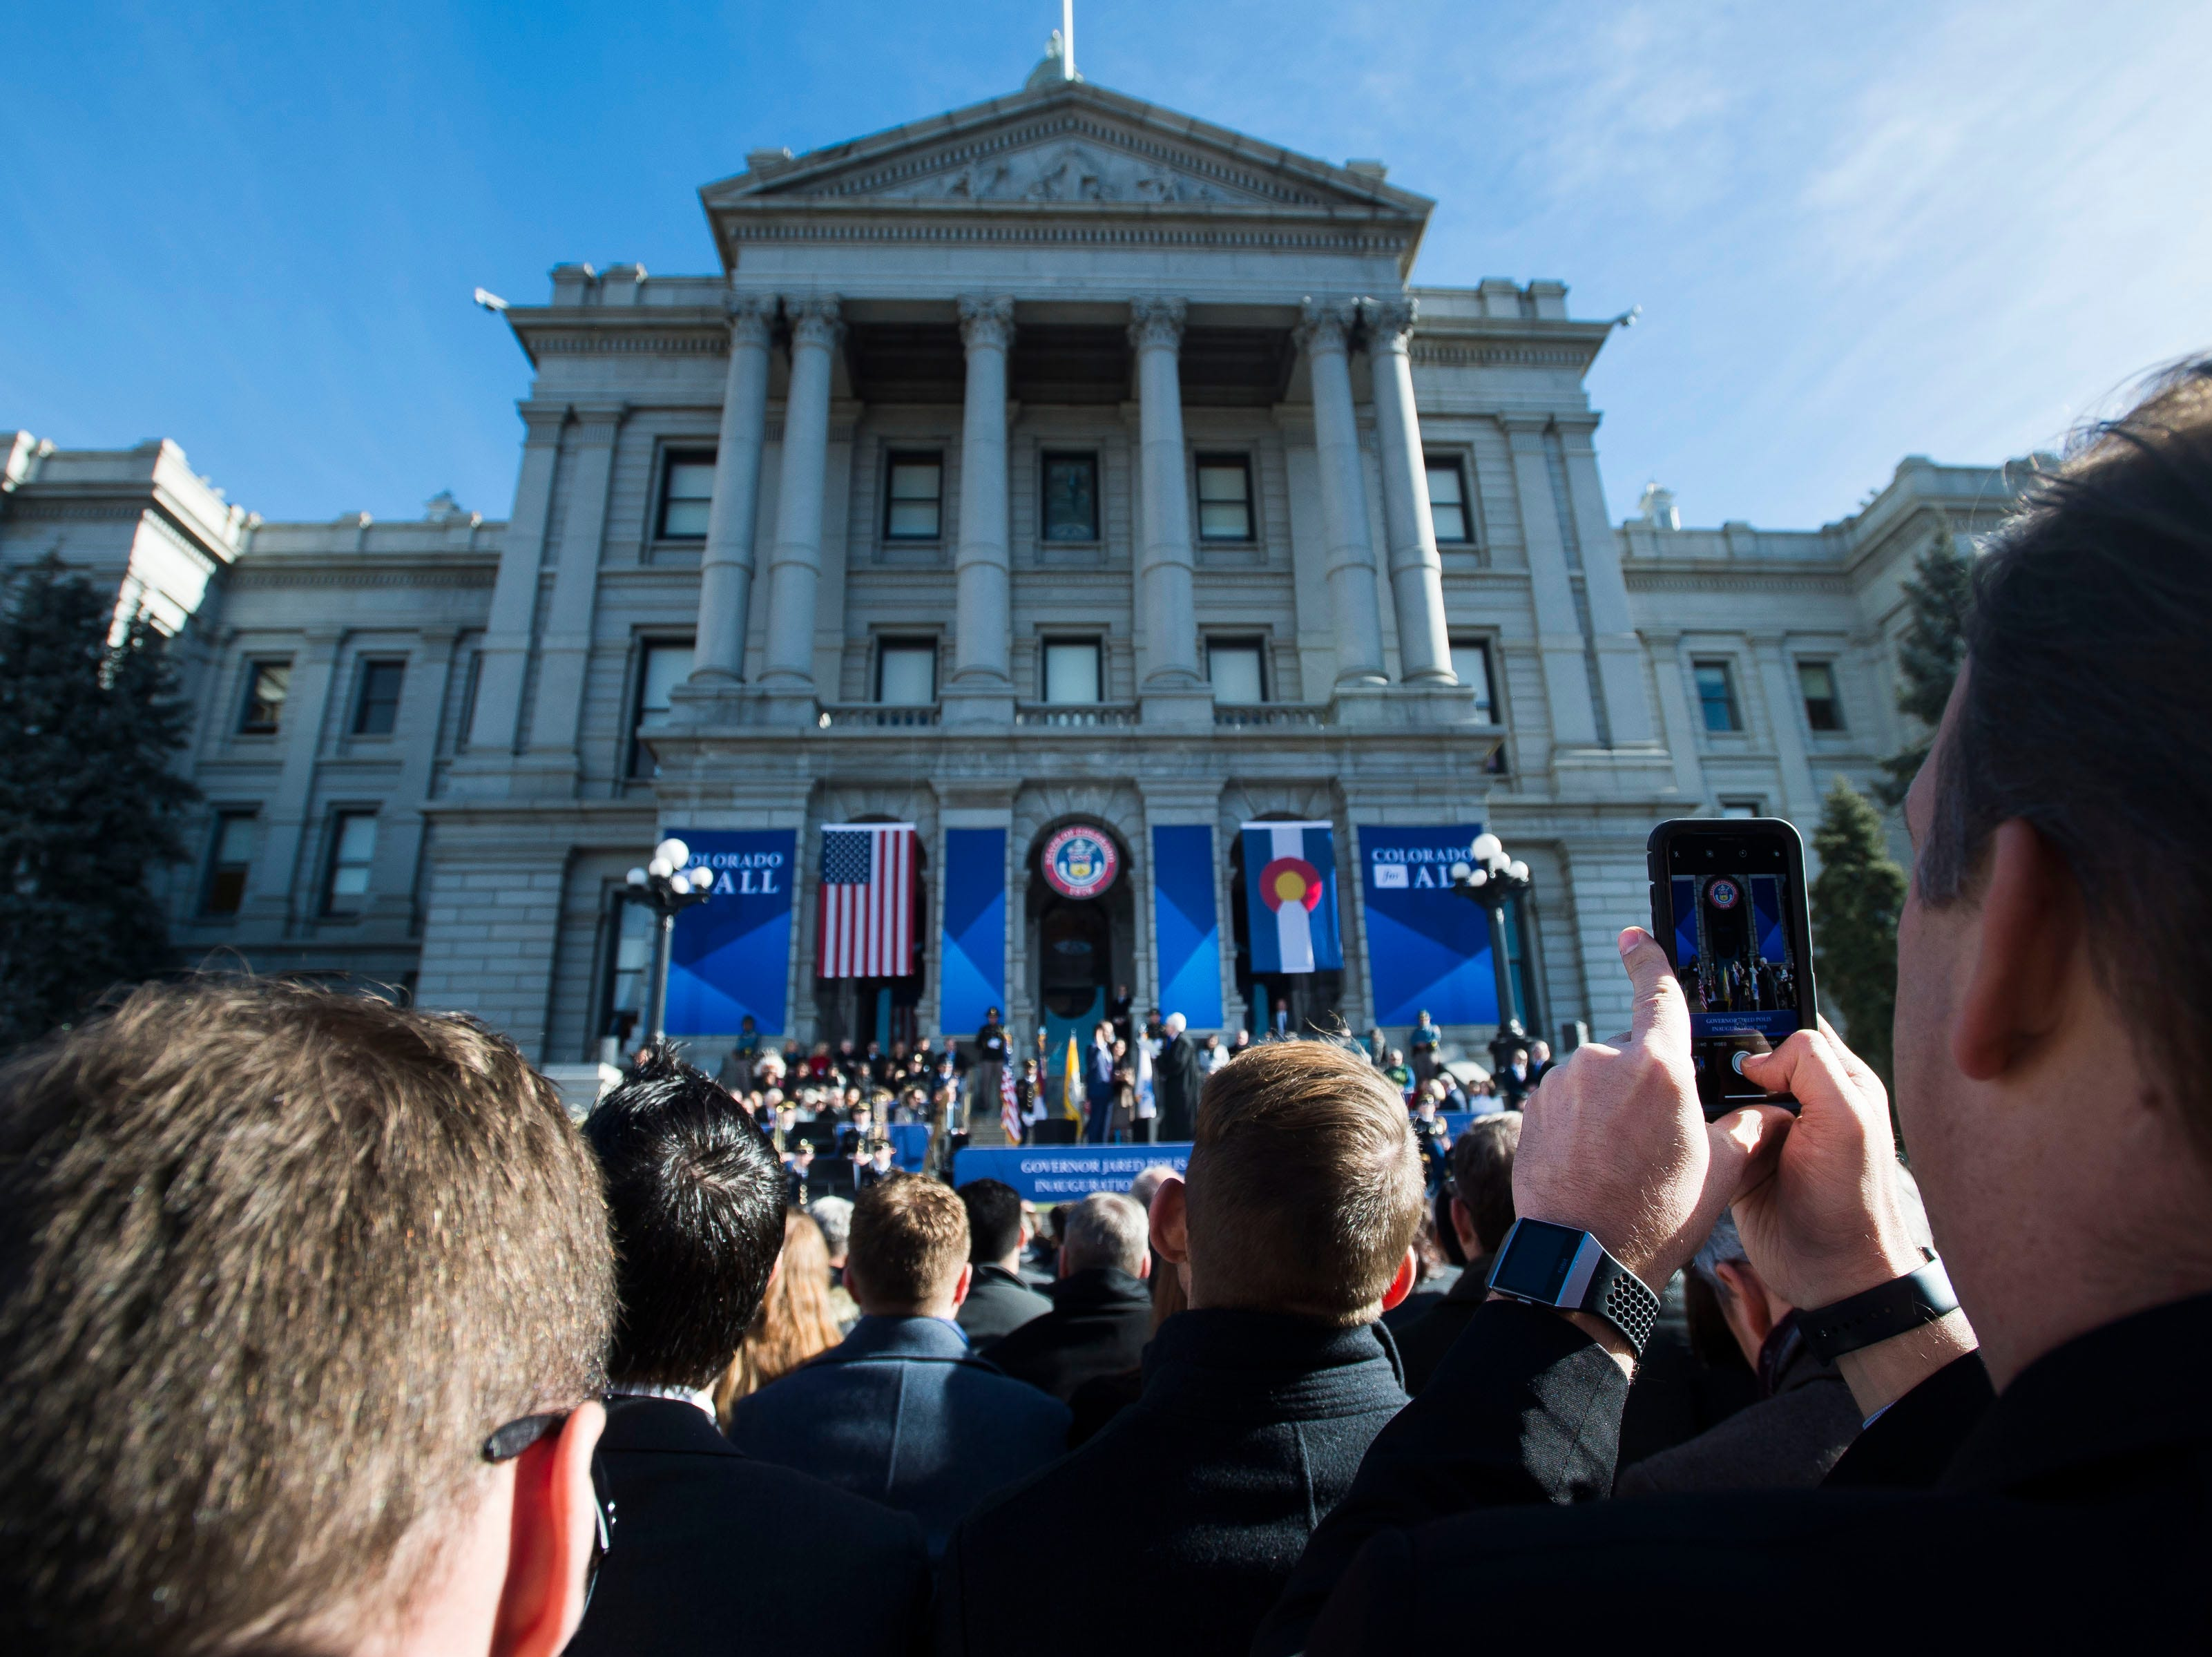 Erik Mitisek, right, takes a photo on his phone during the inauguration of Colorado State Governor Jared Polis on Tuesday, Jan. 8, 2019, in front of the Colorado State Capital building in Denver, Colo.